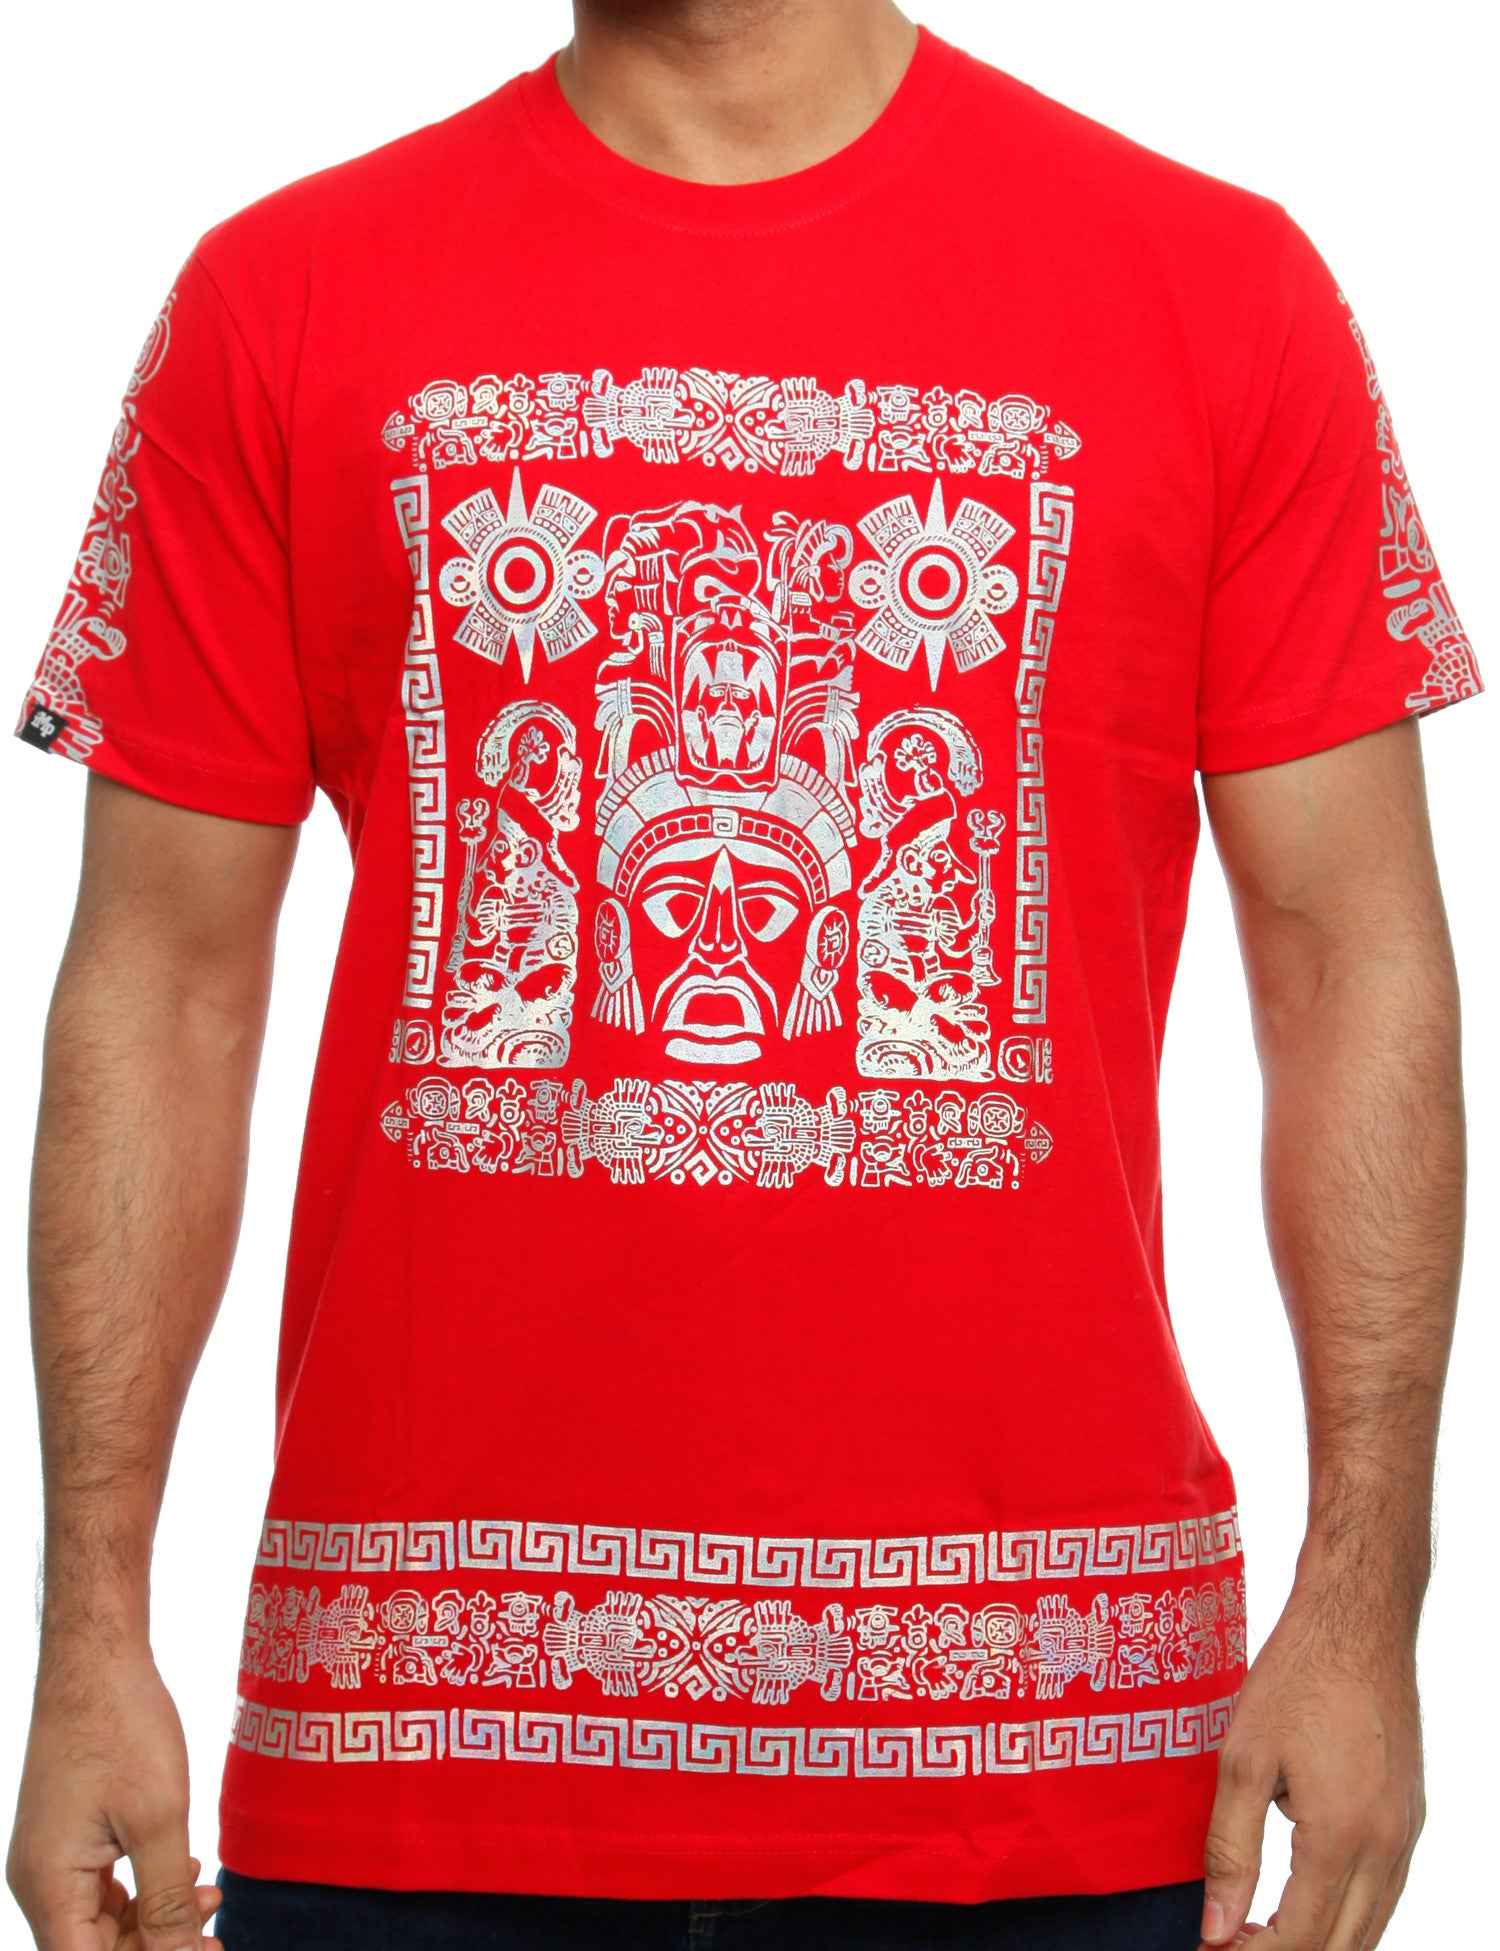 Imperious ´Hologram Mayan´ T-Shirt TS542 Red